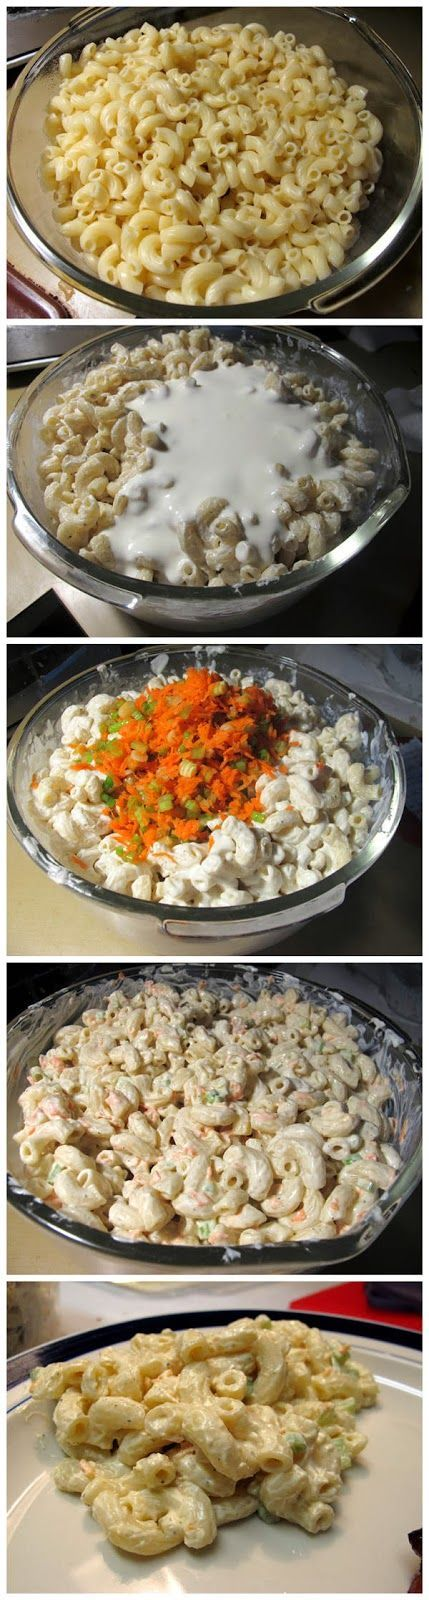 Ingredients:    1 lb elbow macaroni  1/2 cup apple cider vinegar  2 cups whole or 2% milk, divided (skim or 1% is just too thin)  2 cups ...